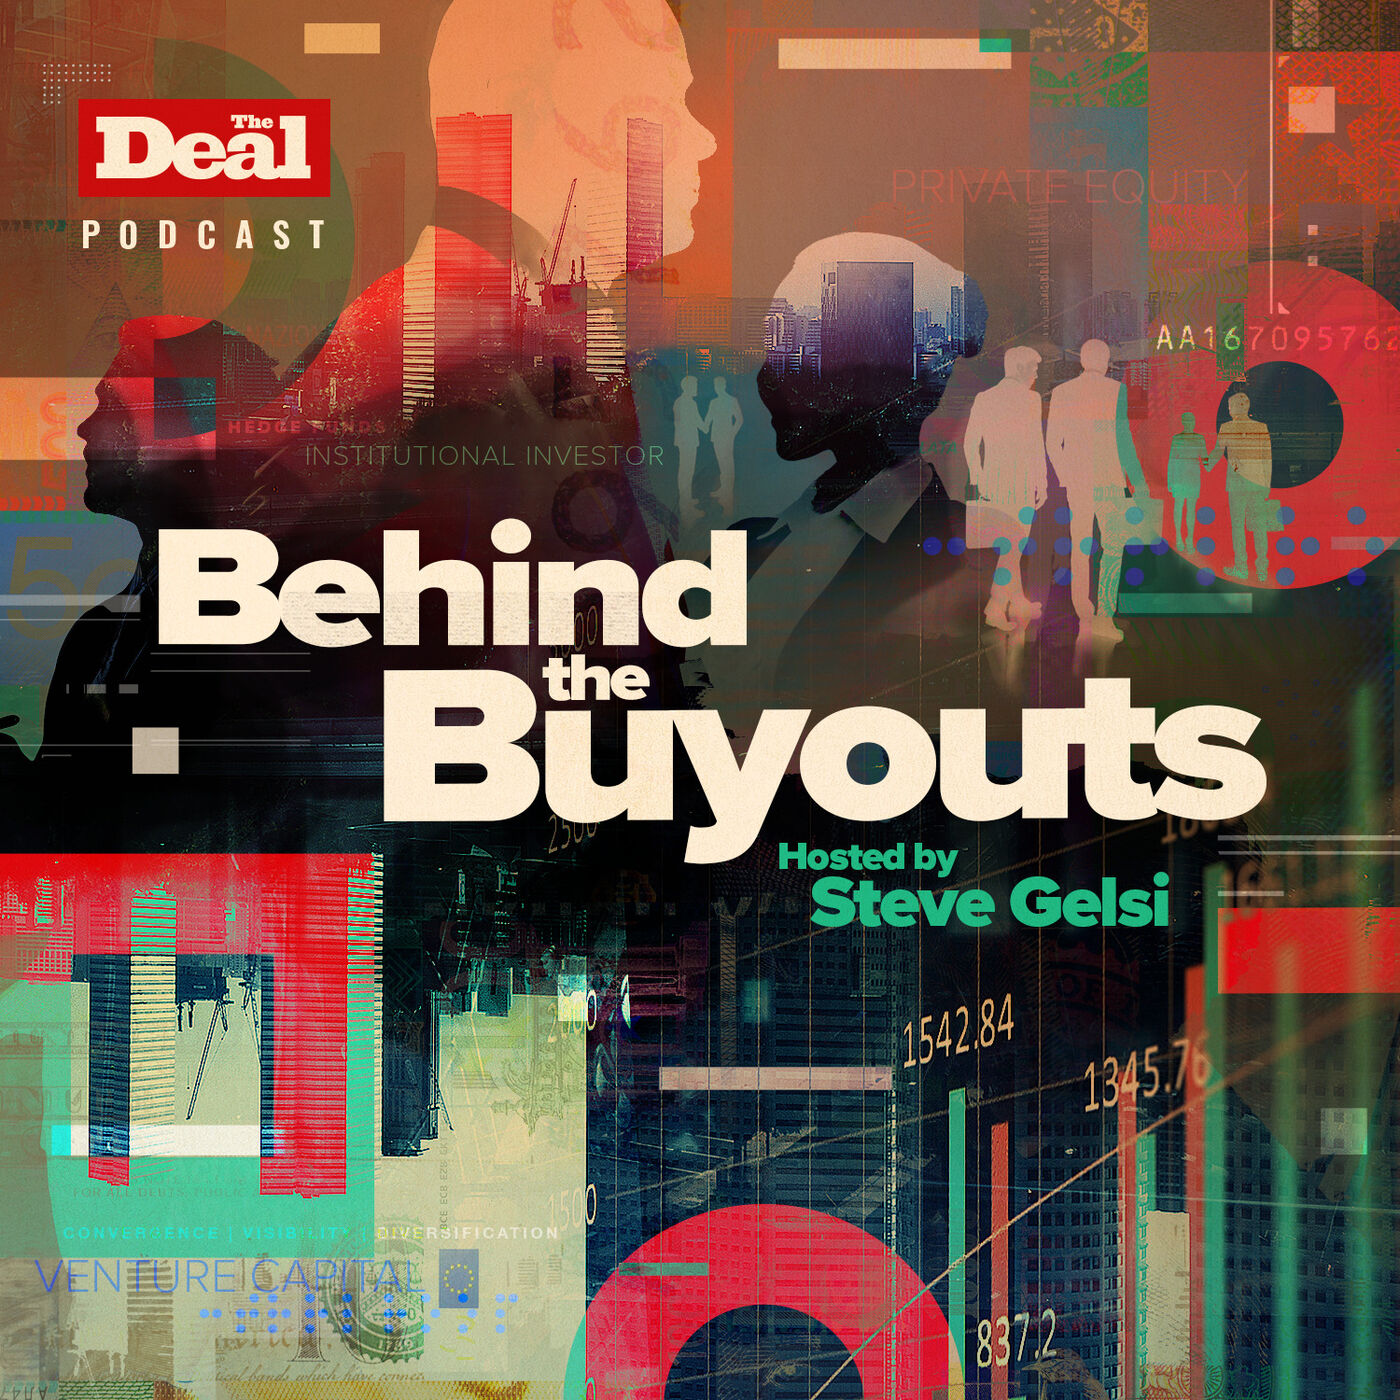 Behind the Buyouts Podcast: Song Serves Up Vestar's Better-For-You Menu